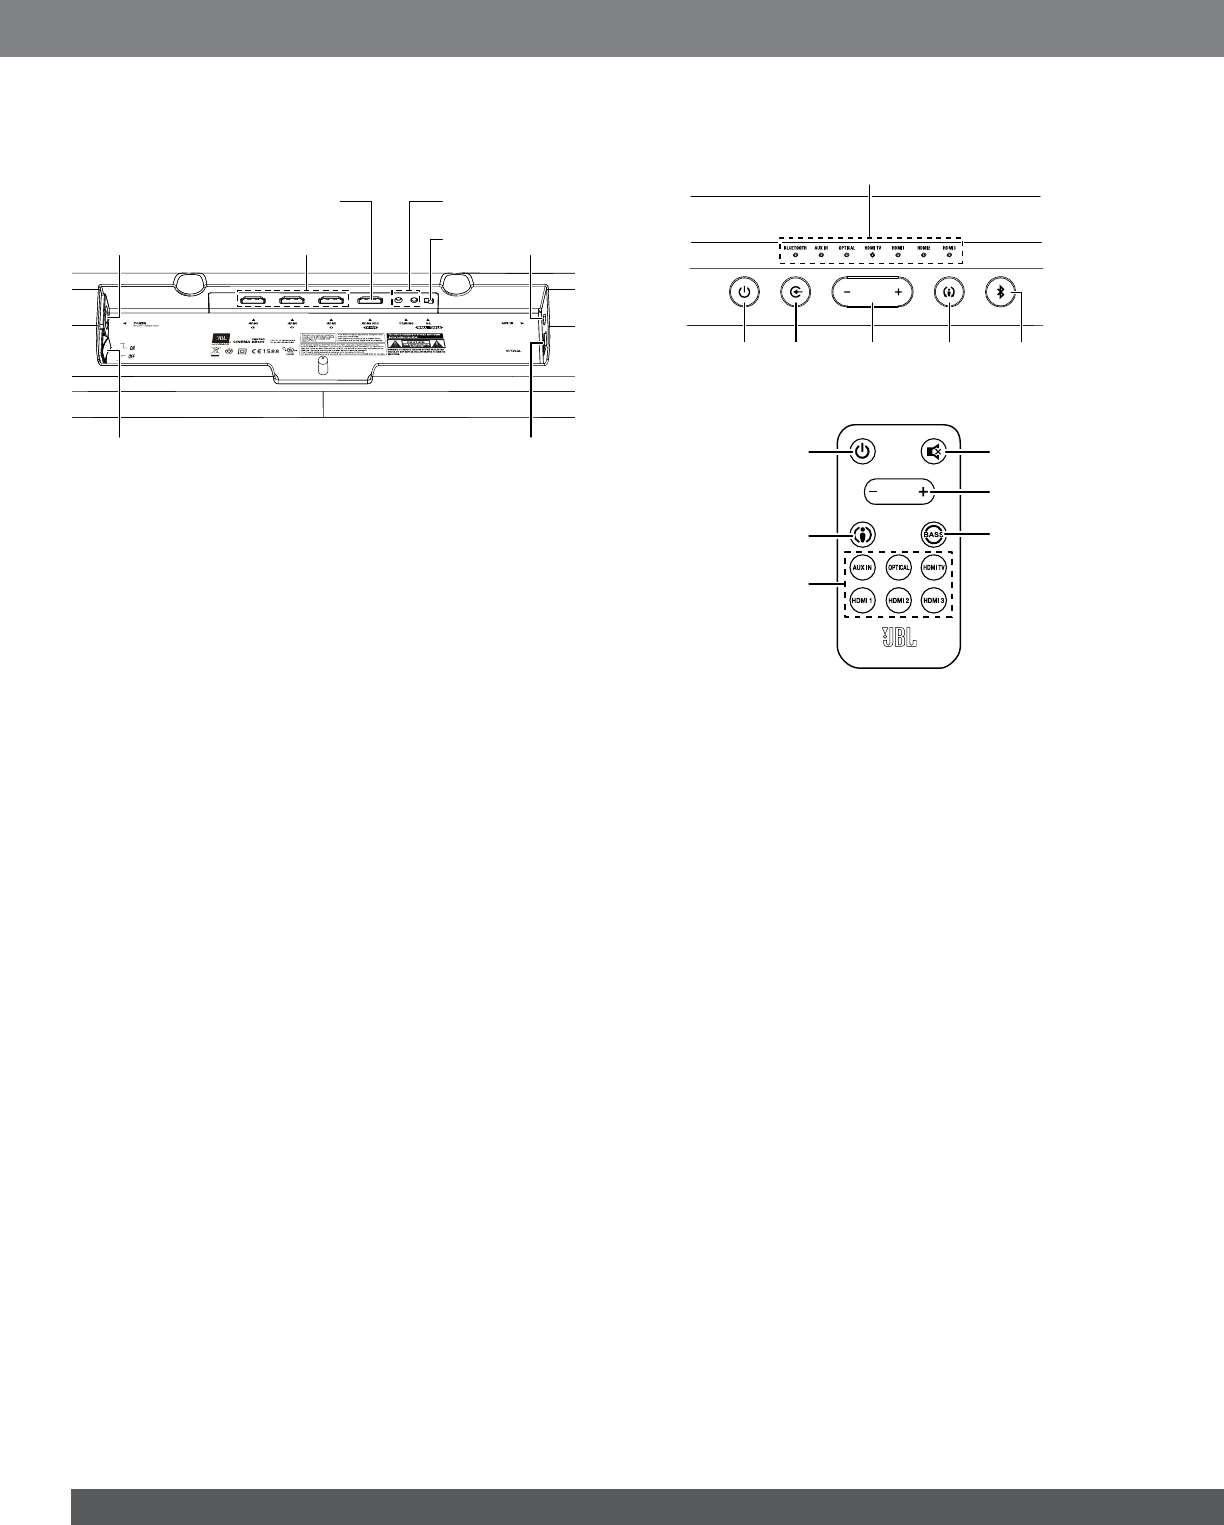 Wiring Poulan Diagram Pp11536ka Diagrams For Mower Will Be A Thing U2022